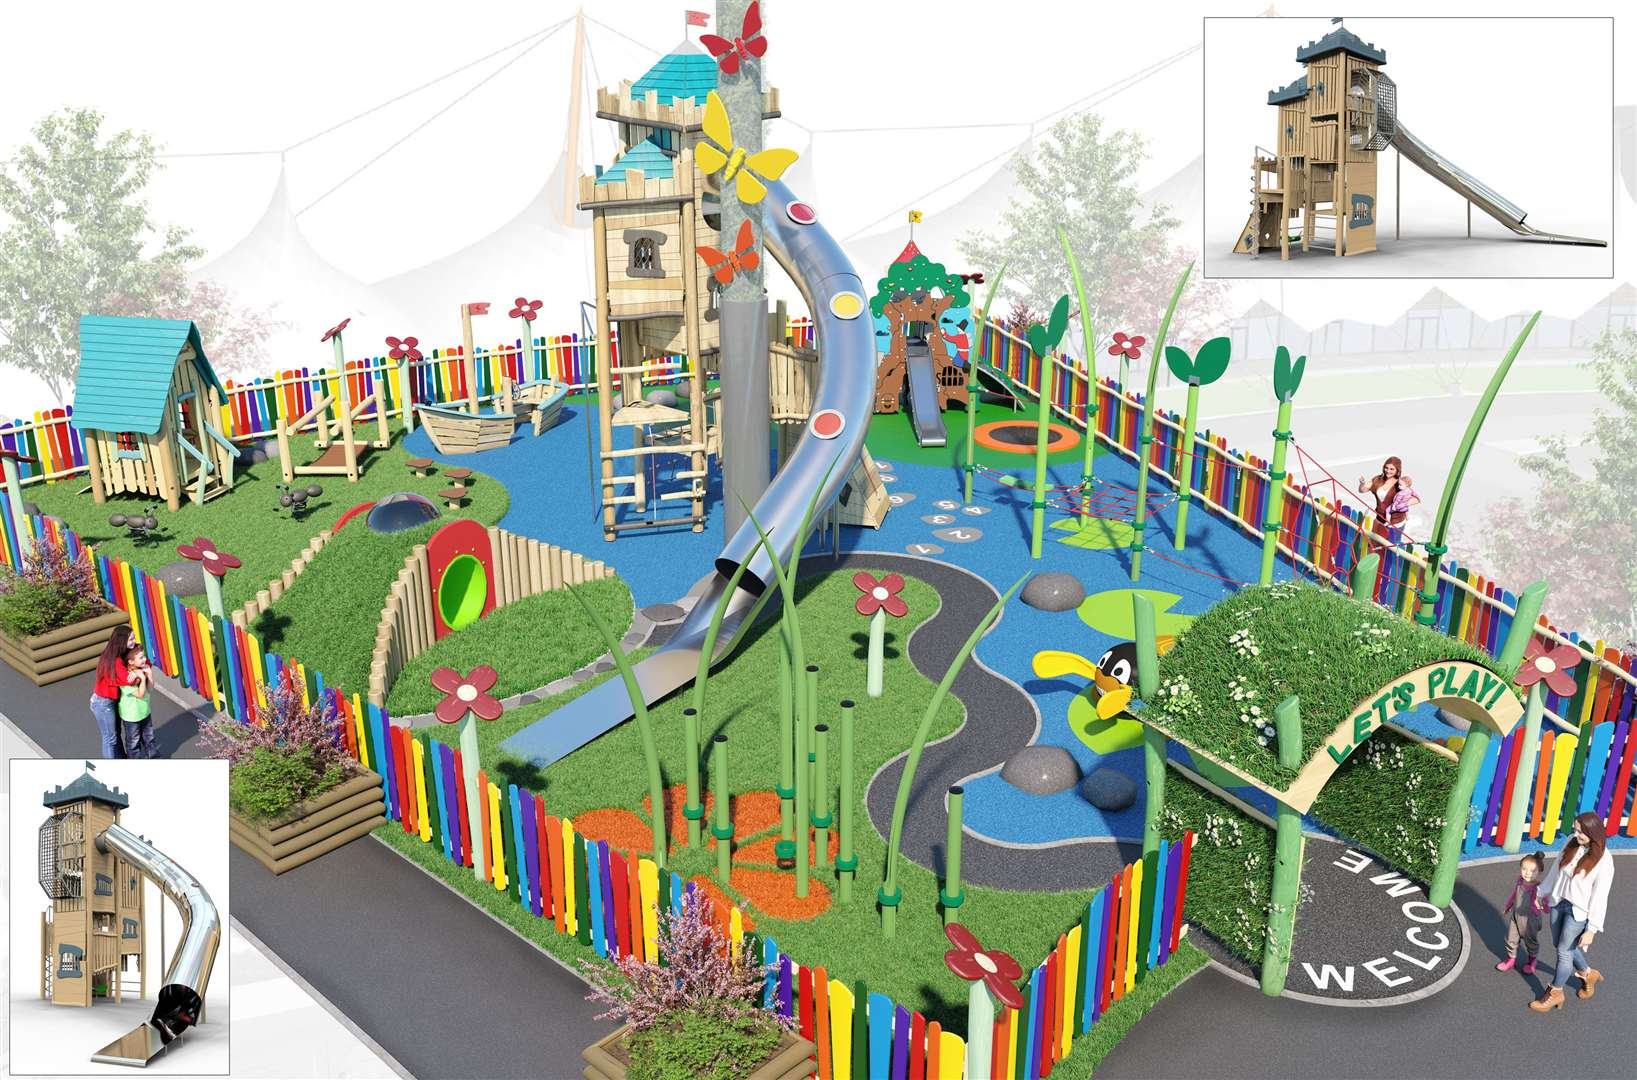 The new play area will open later this month